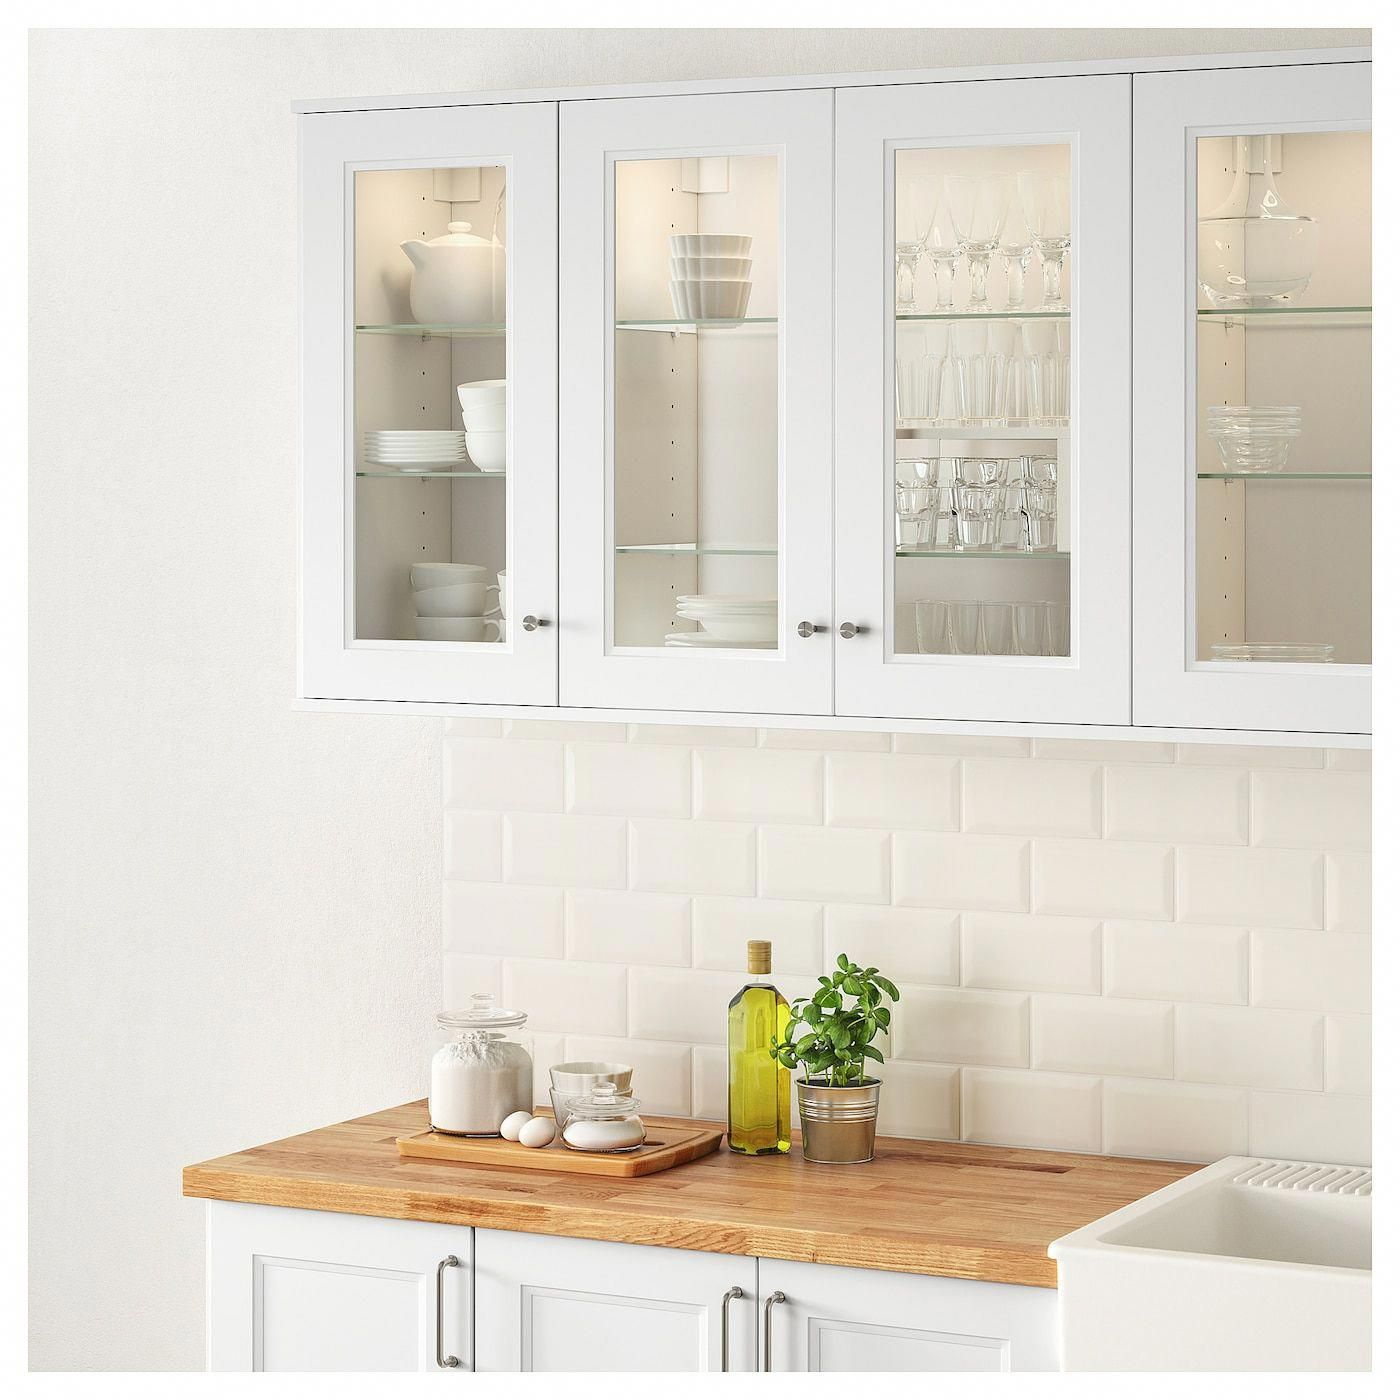 IKEA AXSTAD Glass door matt white whitekitchen in 2020